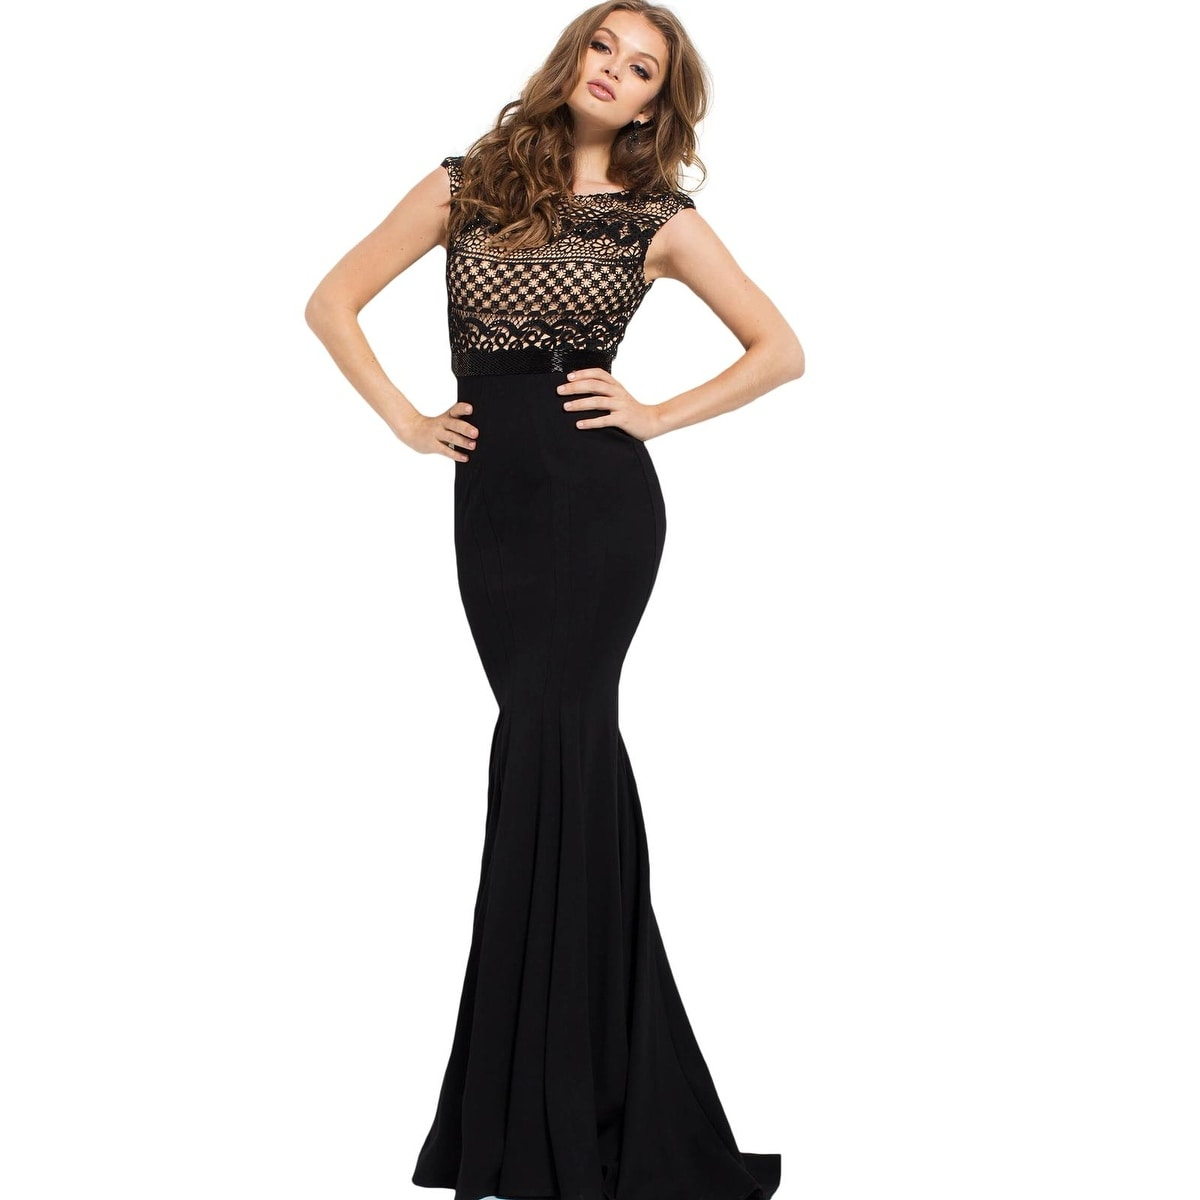 2eff2c540c0 Jovani Evening Dresses On Sale - Gomes Weine AG